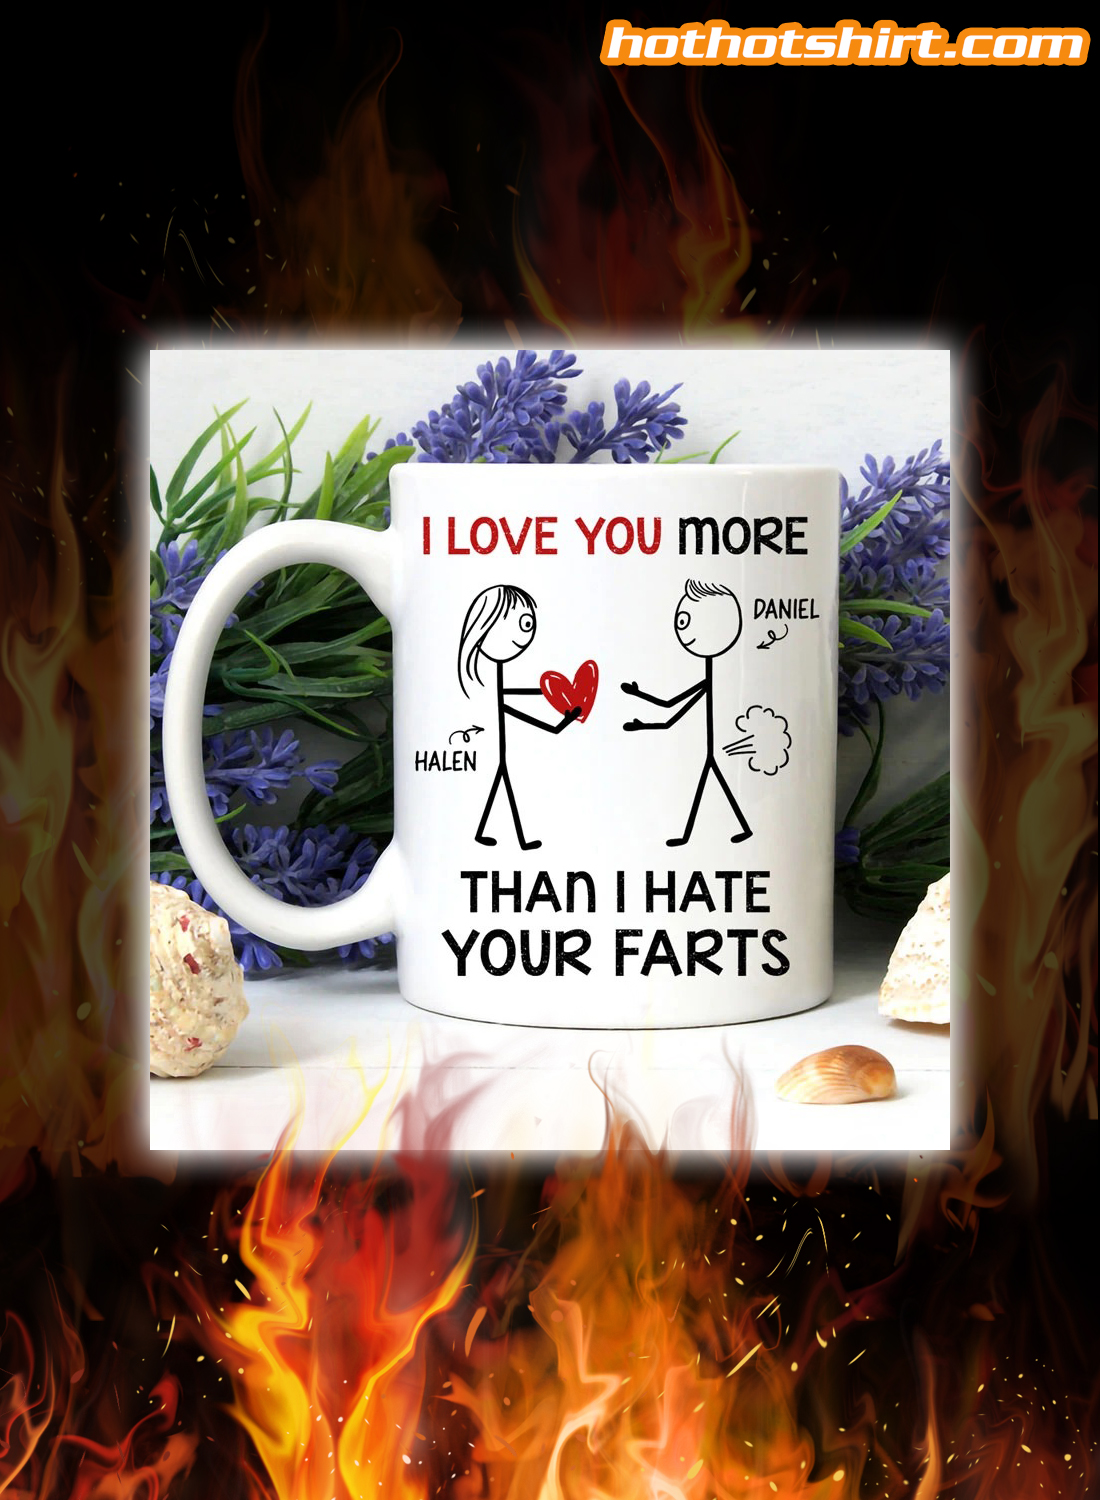 Personalized customize I love you more than i hate your farts mug